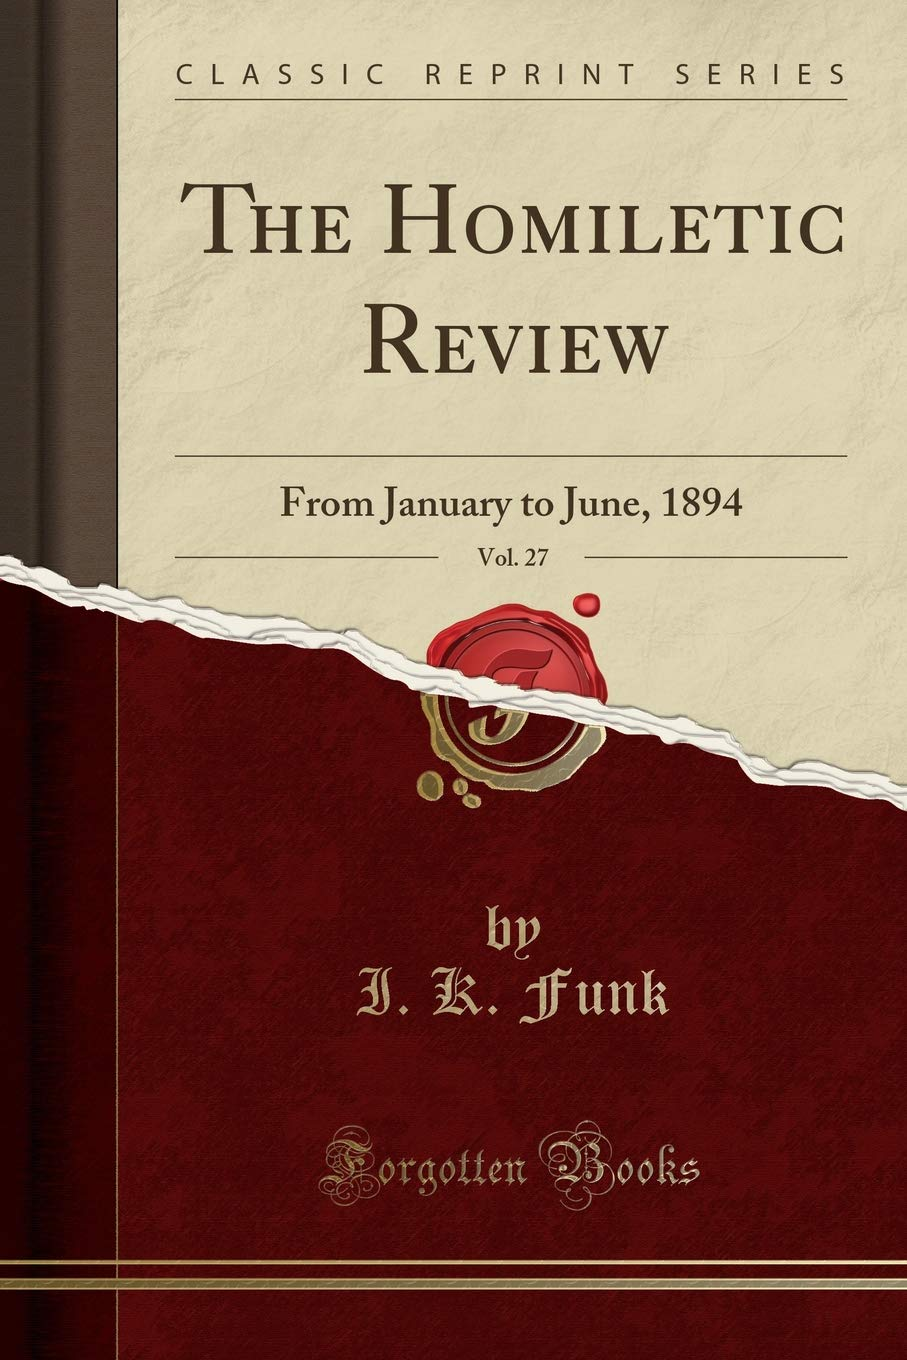 The Homiletic Review, Vol. 27: From January to June, 1894 (Classic Reprint) PDF